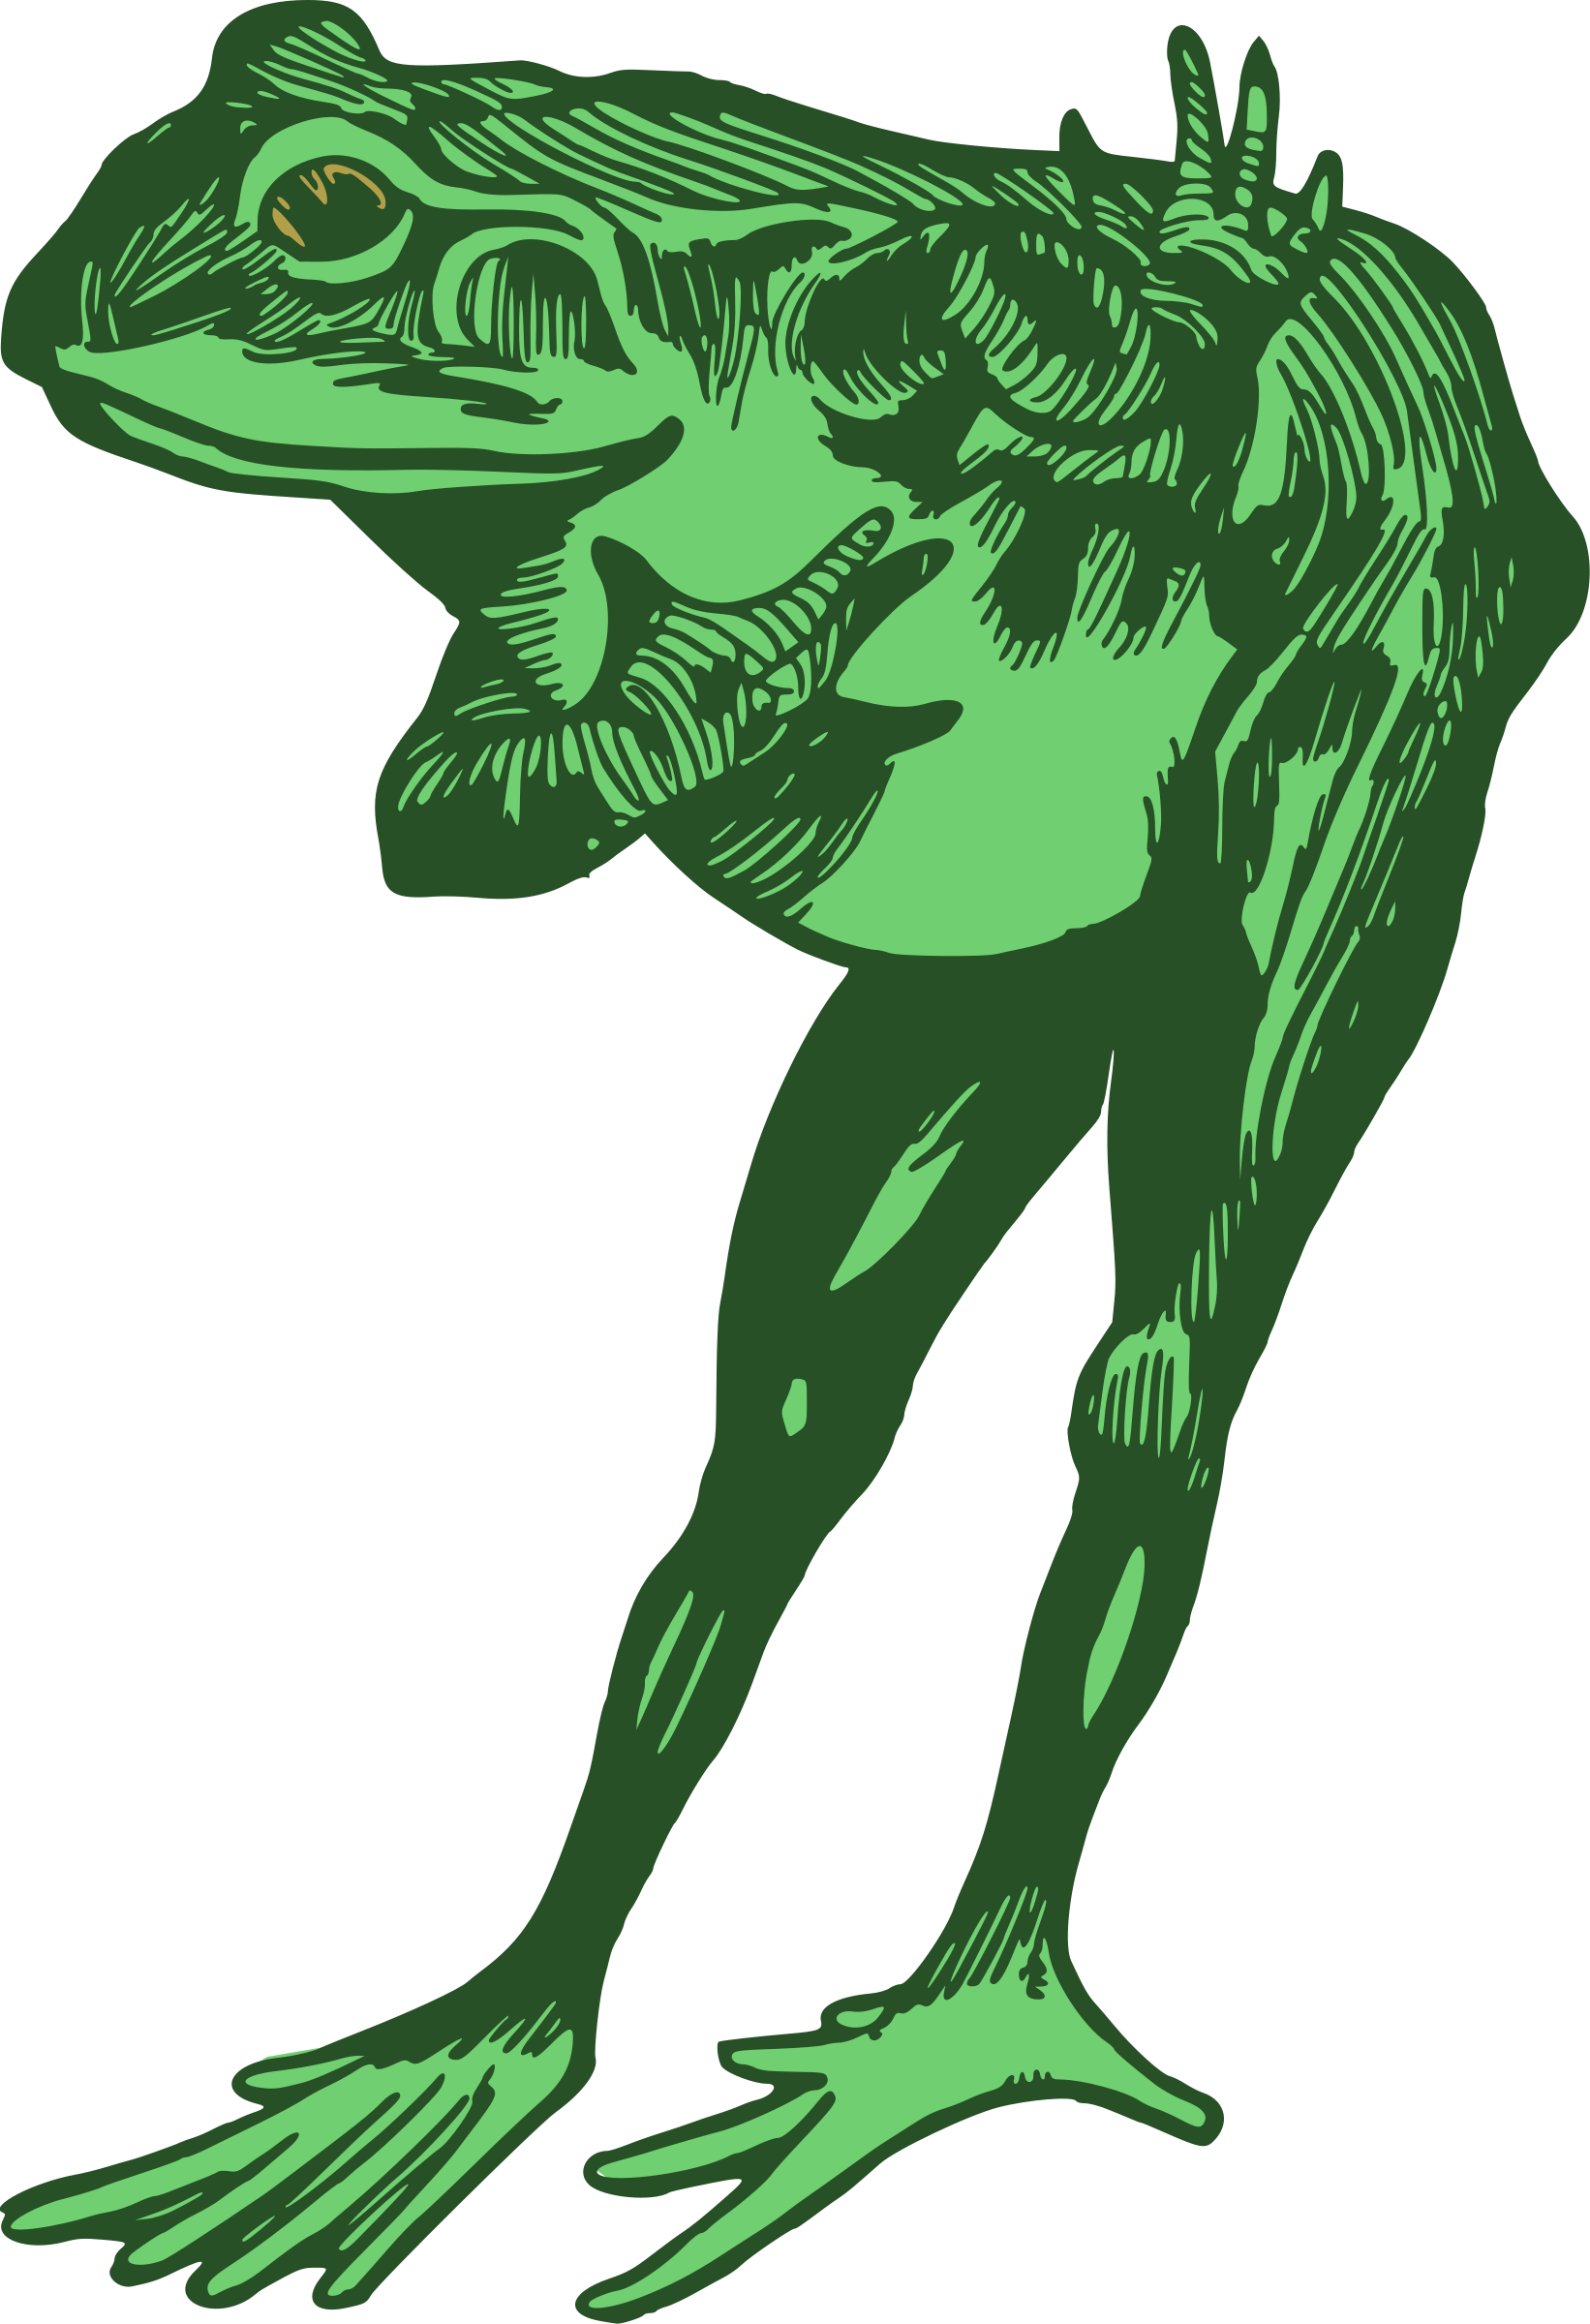 Frog big image png. Toad clipart colour green